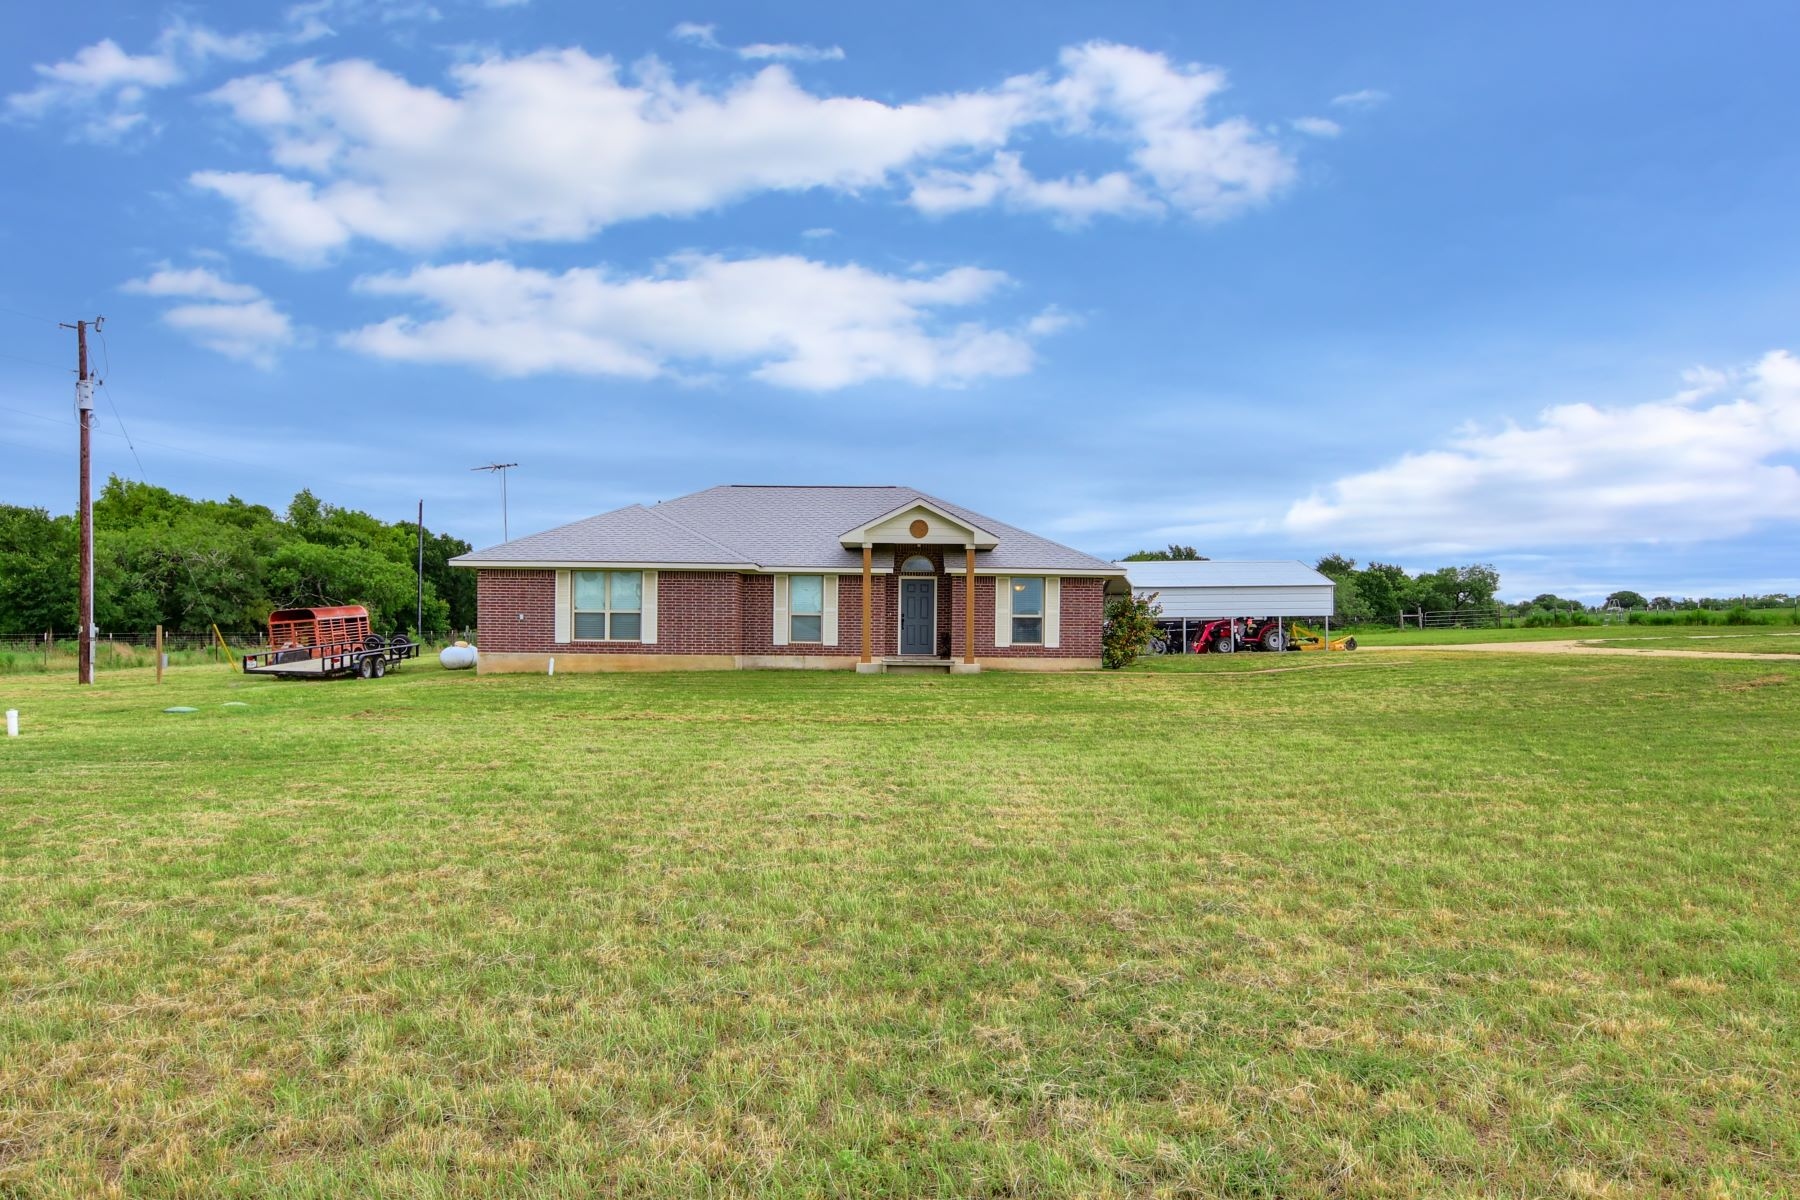 Single Family Homes for Sale at 4515 Pettytown Road, Dale, TX 78616 4515 Pettytown Road Dale, Texas 78616 United States